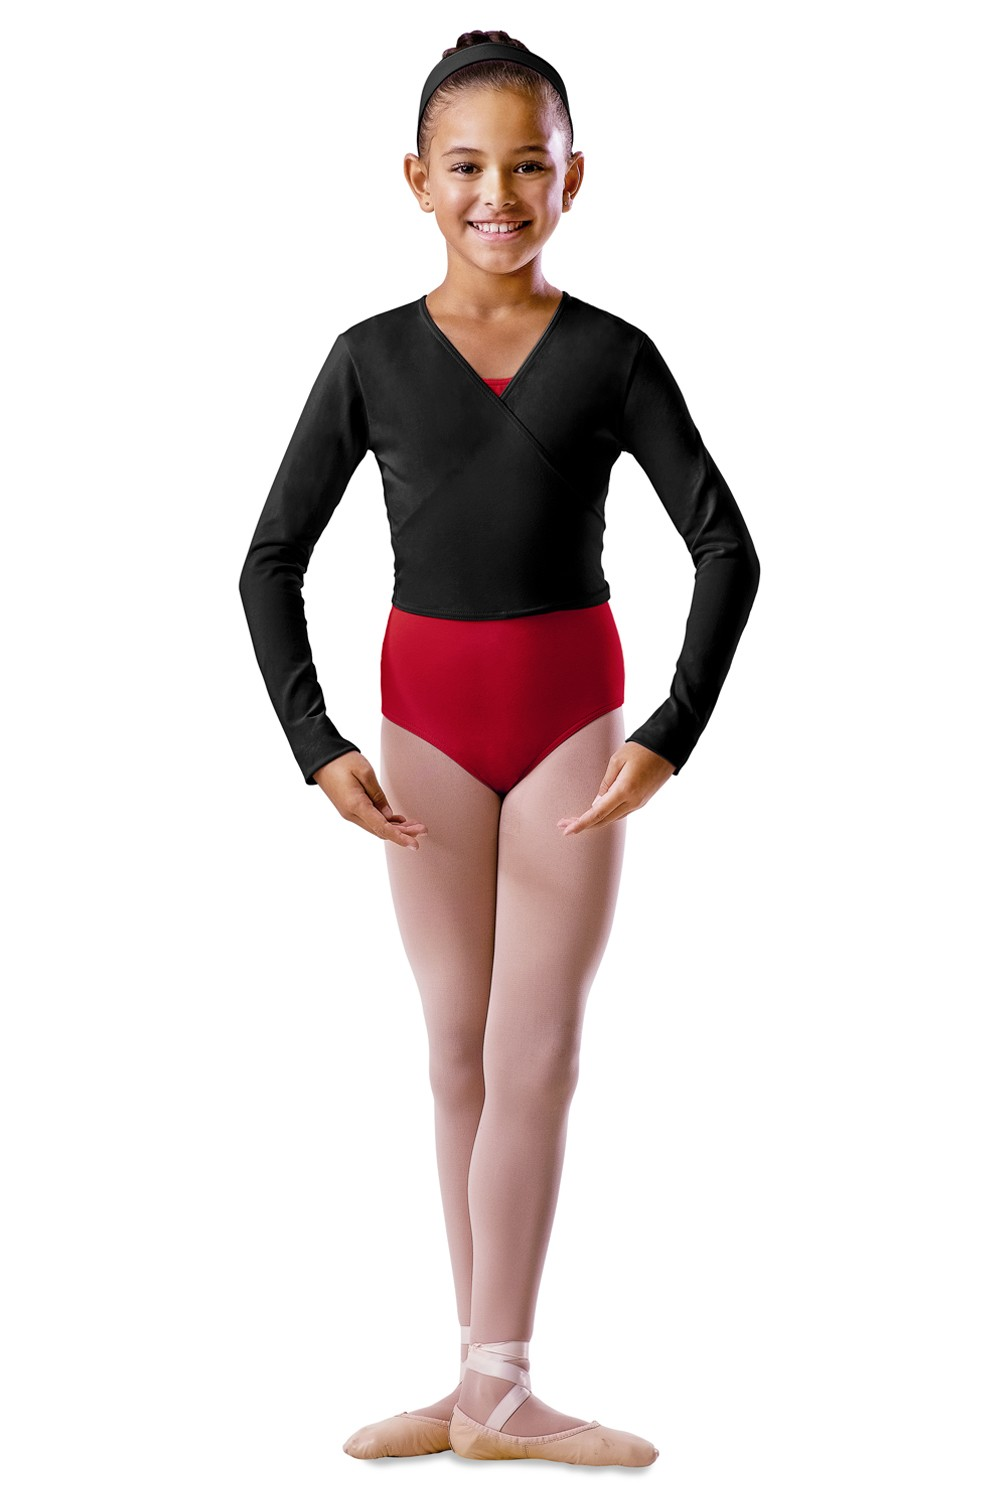 Childrens Long Sleeve Wrap Top Children's Dance Uniforms